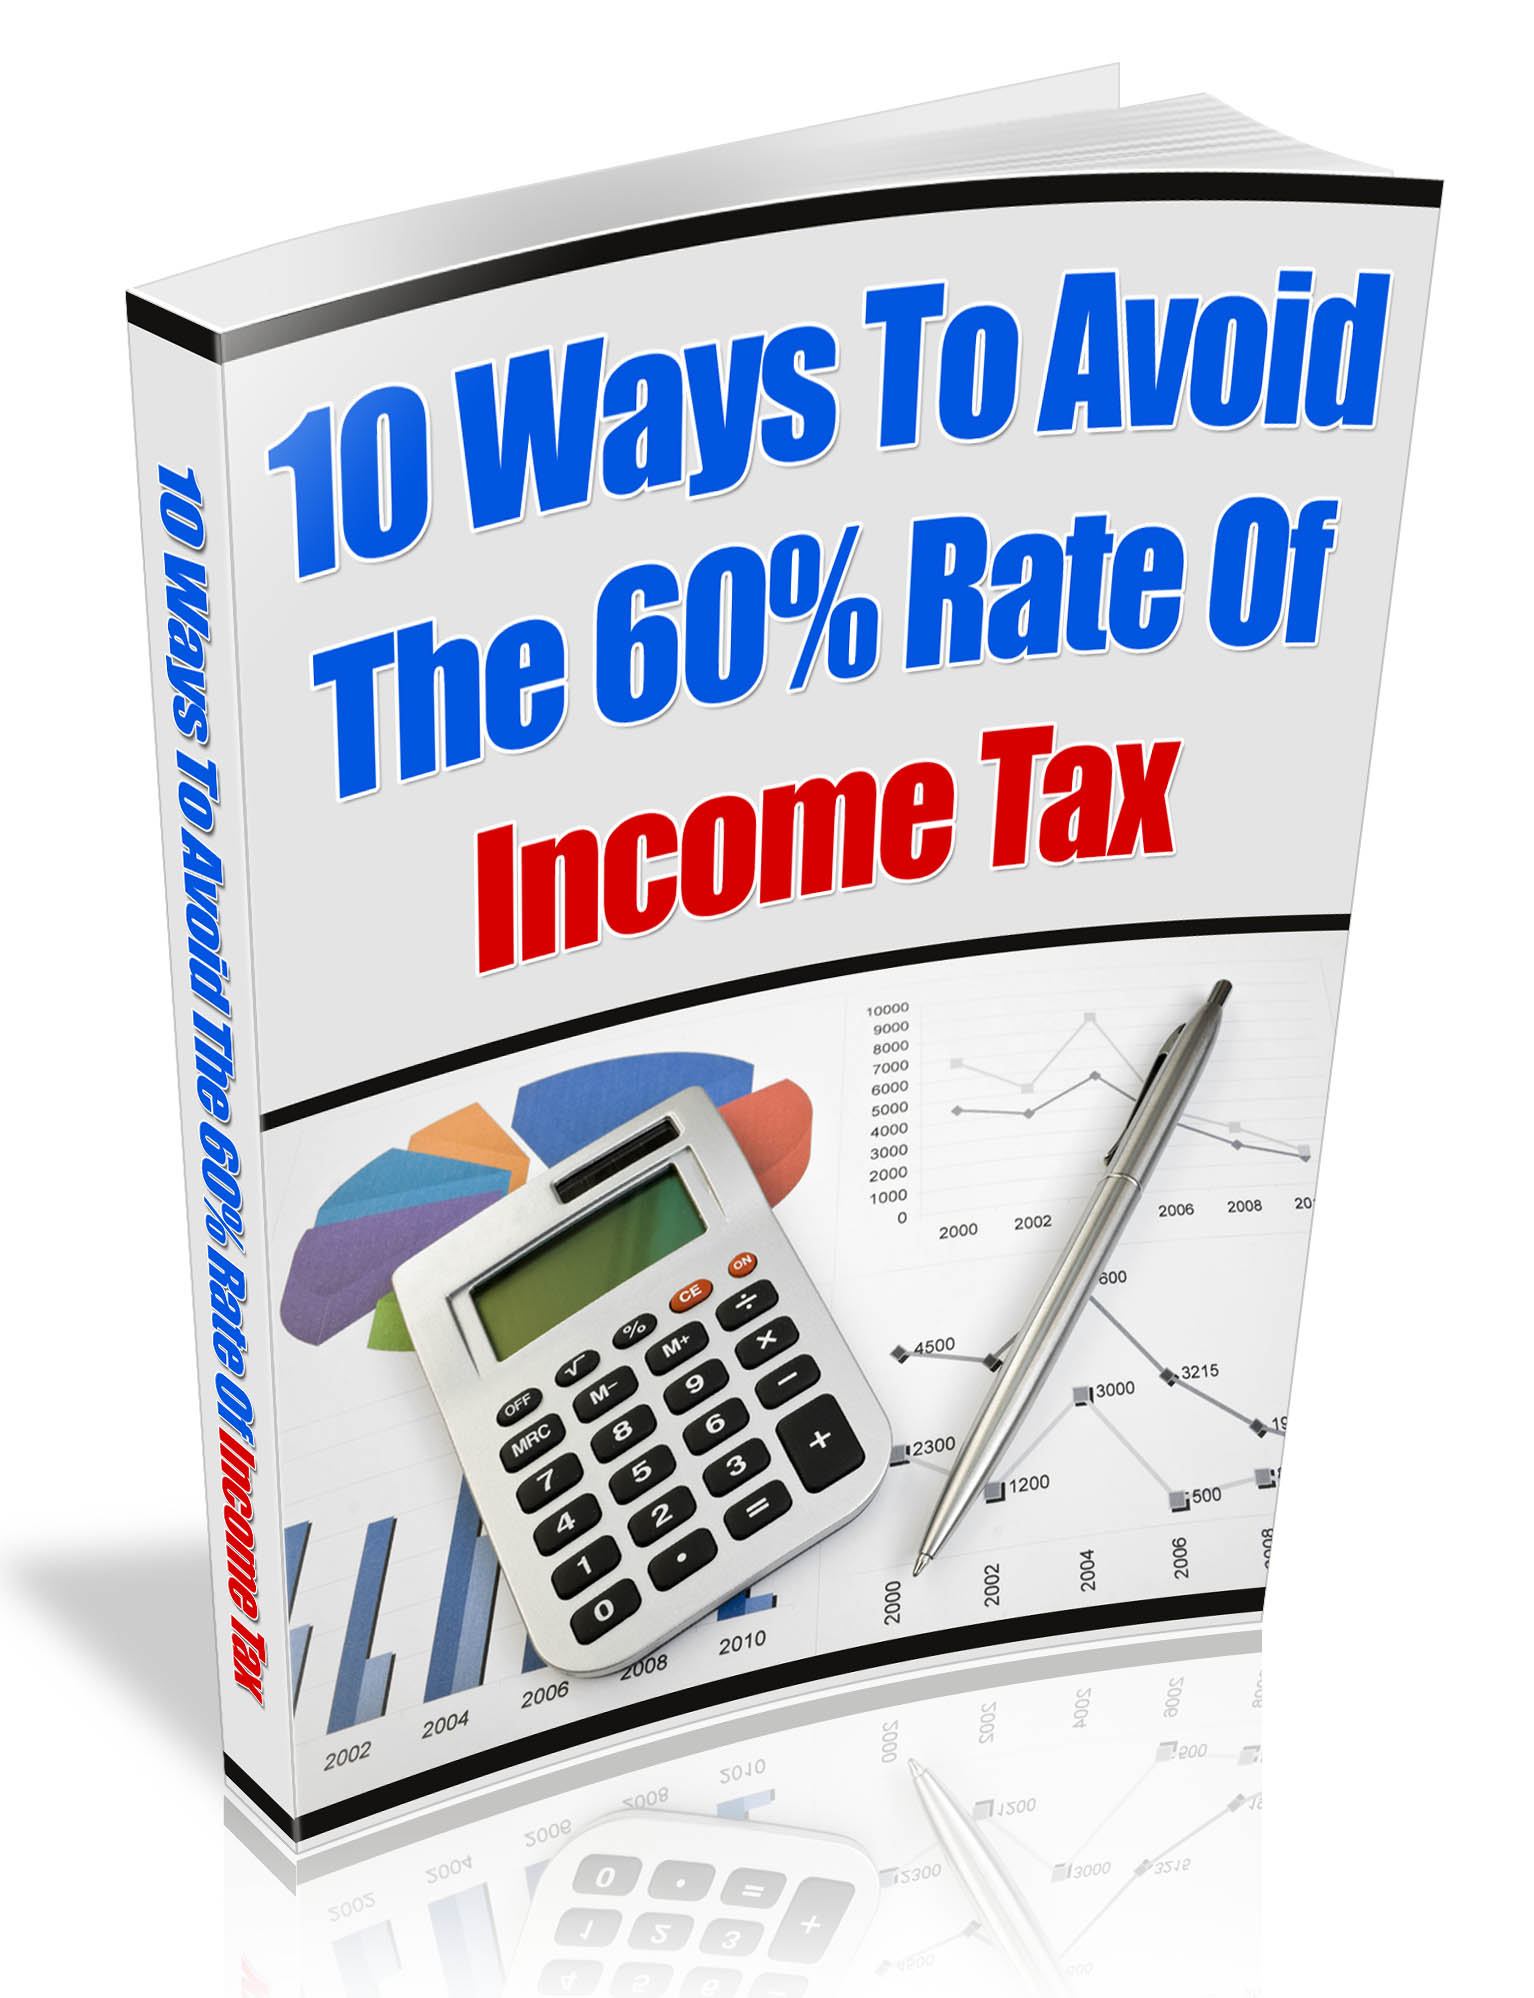 10 ways to avoid the 60% effective rate of tax